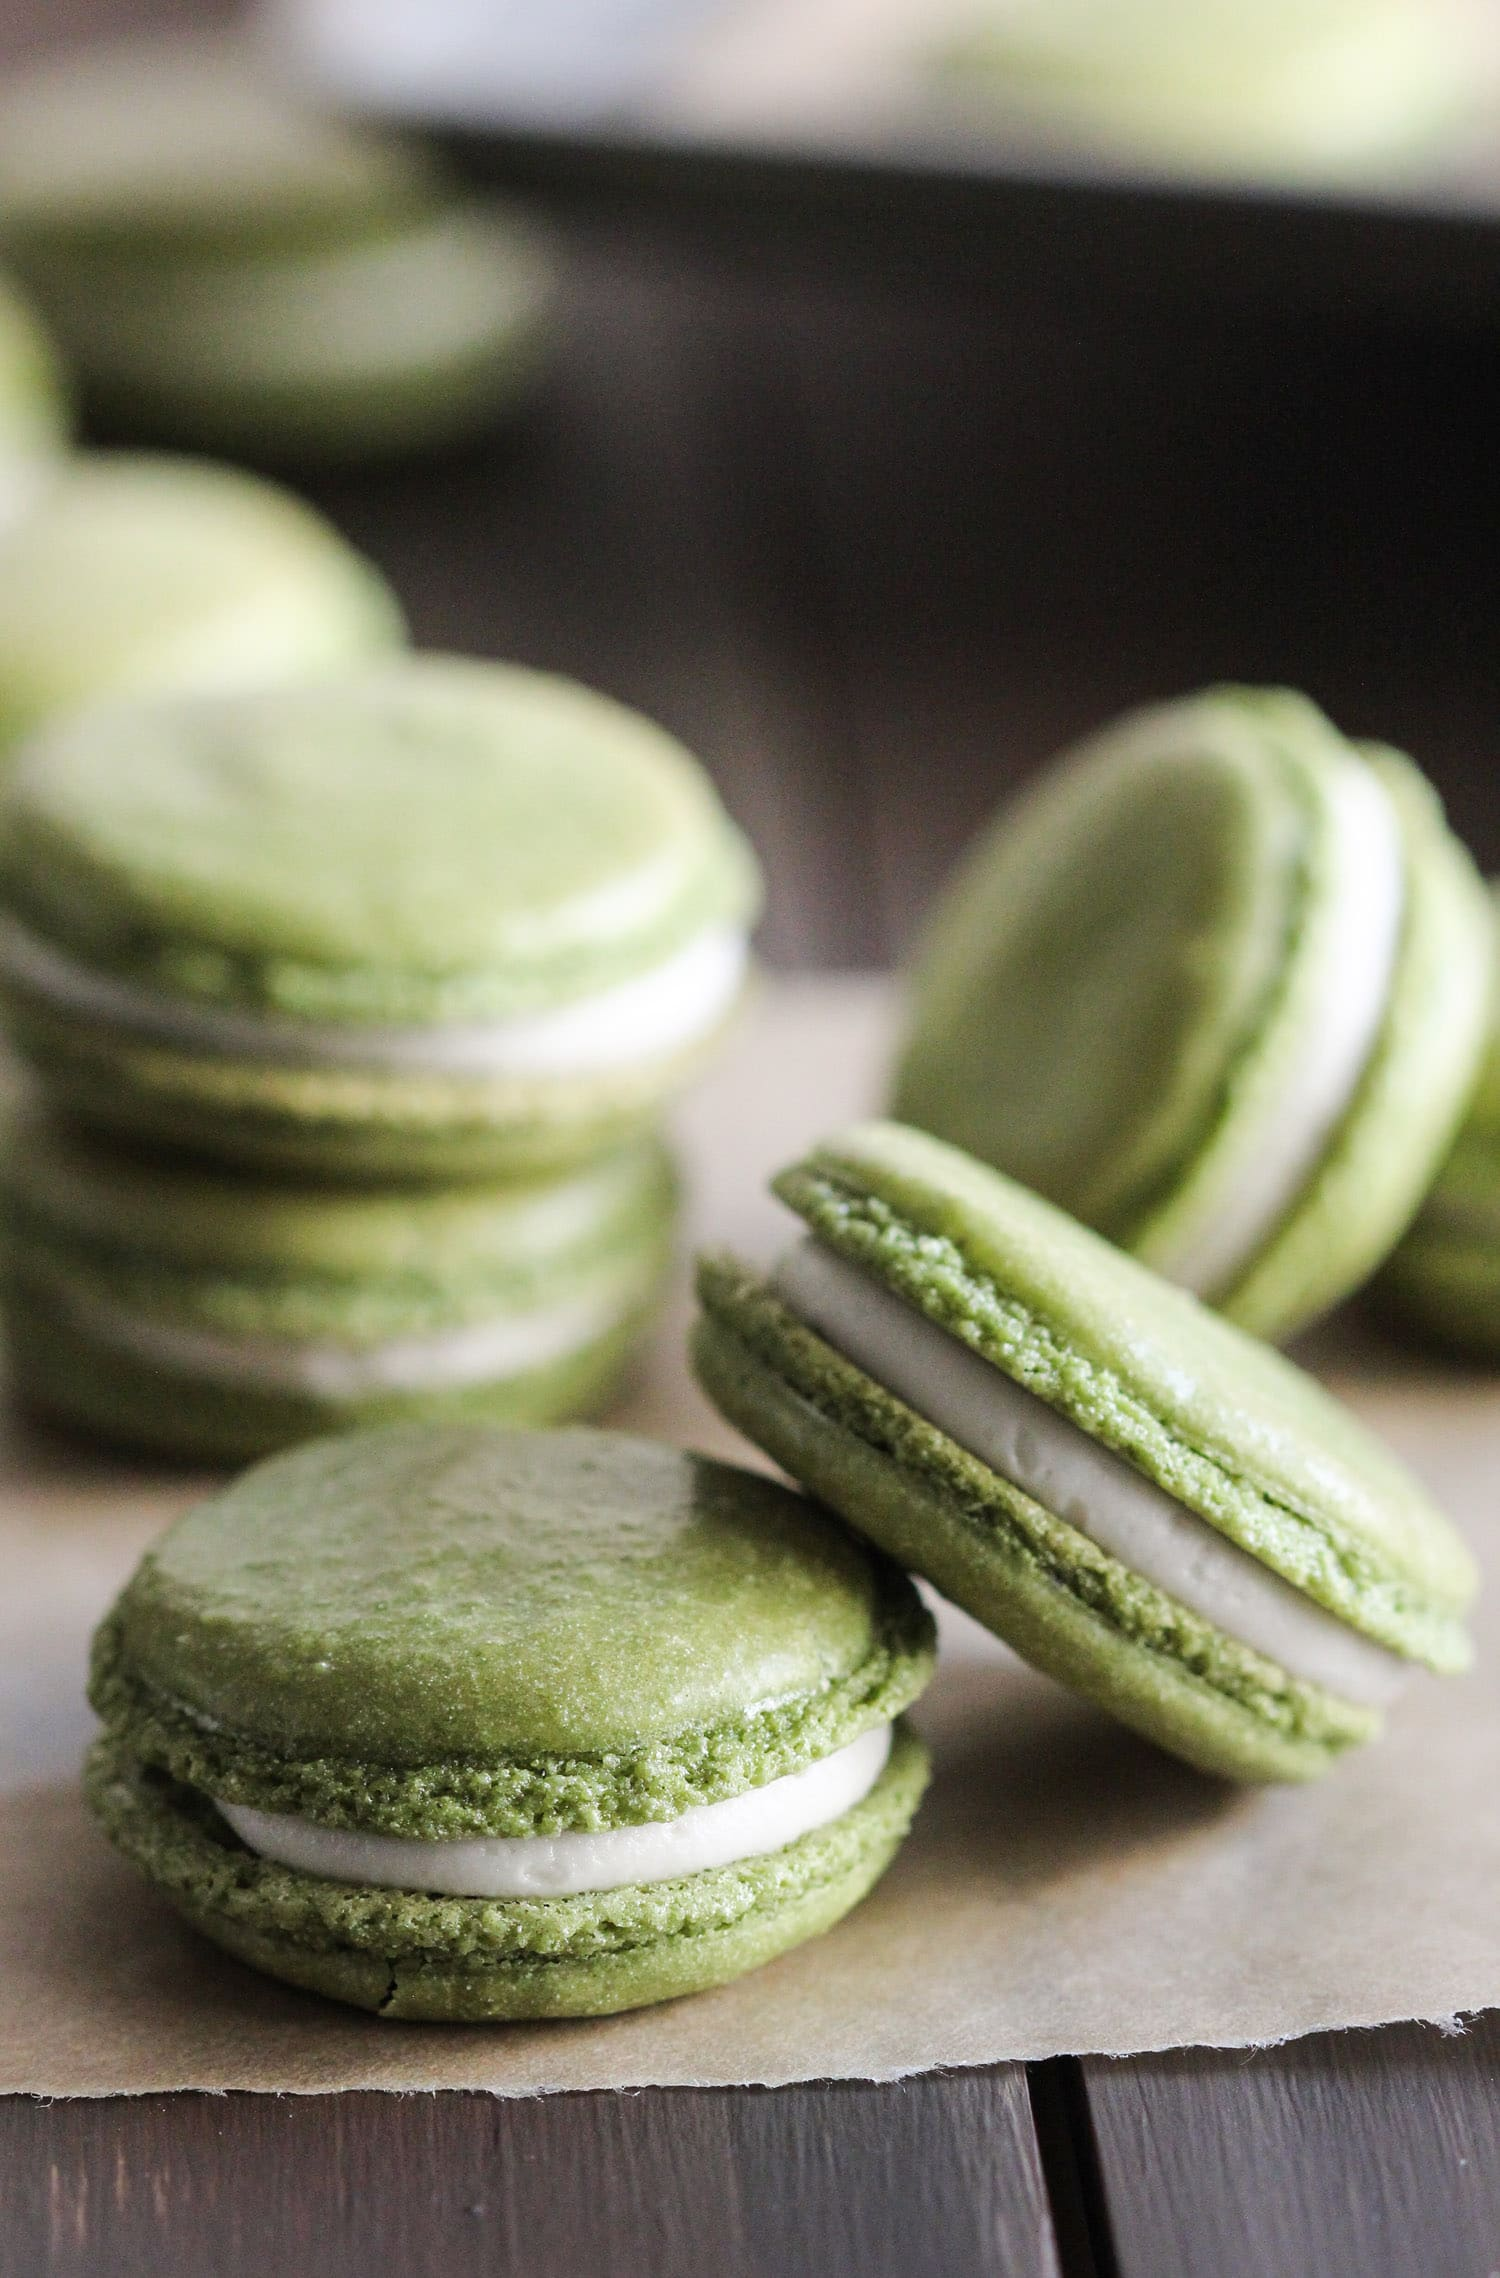 These Healthy Matcha Green Tea French Macarons aren't your typical macarons... these are made without the bleached white sugar, artificial flavorings, and artificial food dyes! That vibrant green you see is ALL NATURAL. These bite-sized treats are sweet, addicting, unique, and sophisticated. They're all natural, low fat, and gluten free too! Healthy Dessert Recipes at the Desserts With Benefits Blog